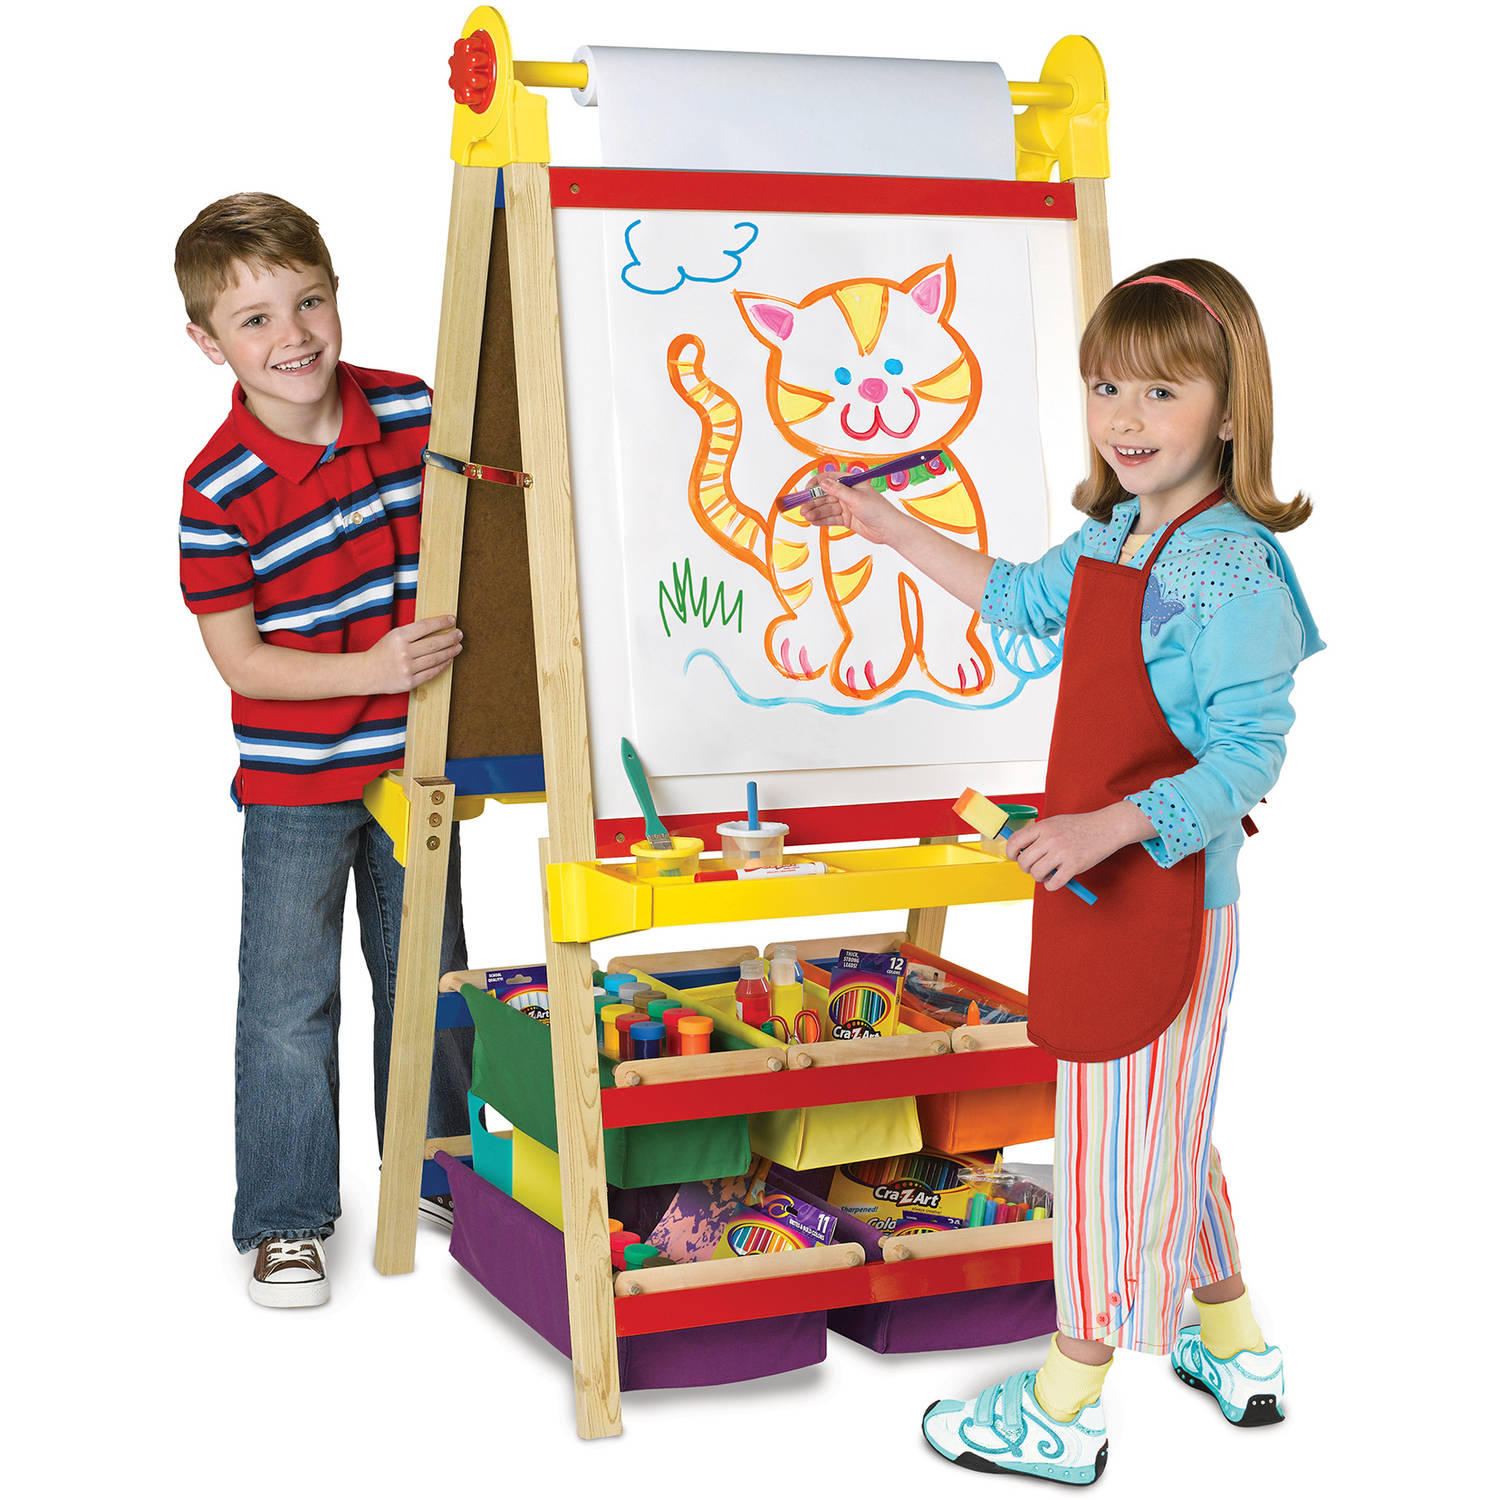 Cra-Z-Art 4-in-1 Wood Standing Ultimate Art Easel